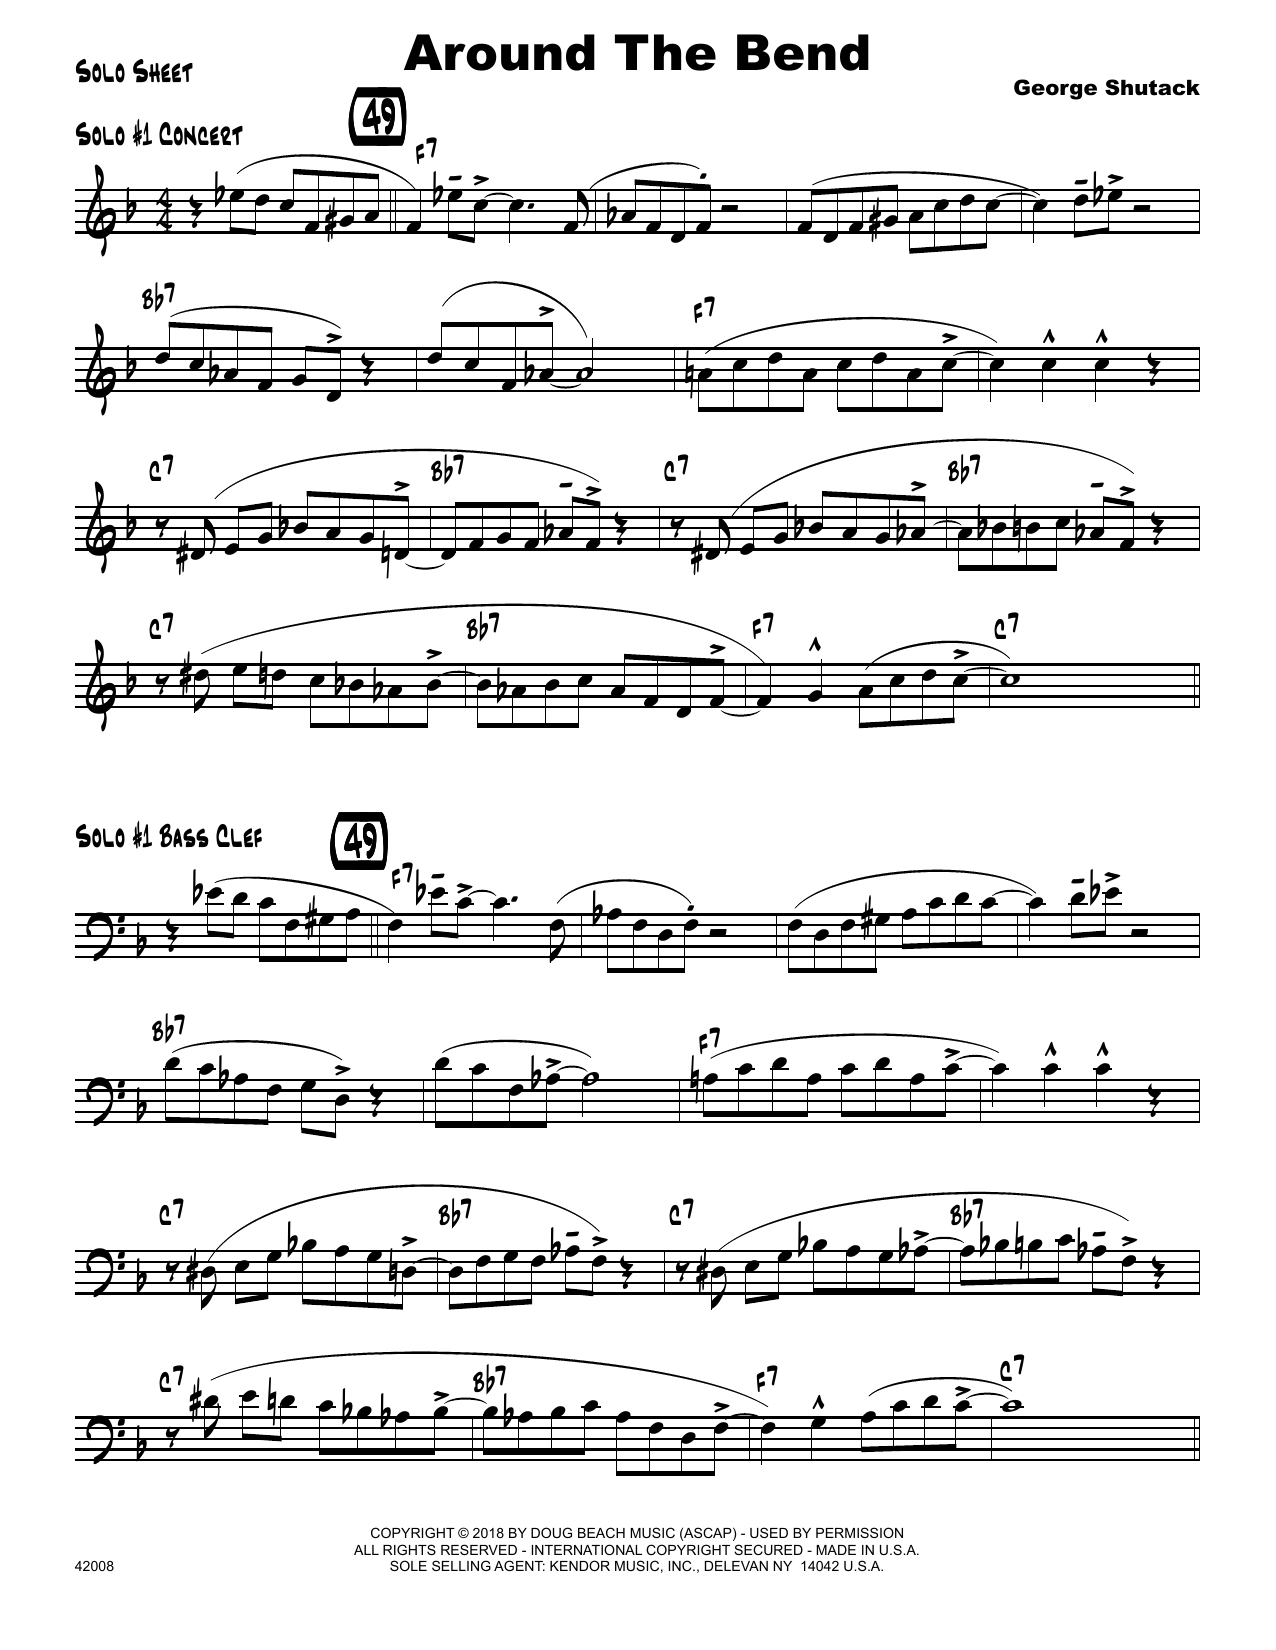 George Shutack Around The Bend - Solo Sheet sheet music preview music notes and score for Jazz Ensemble including 4 page(s)